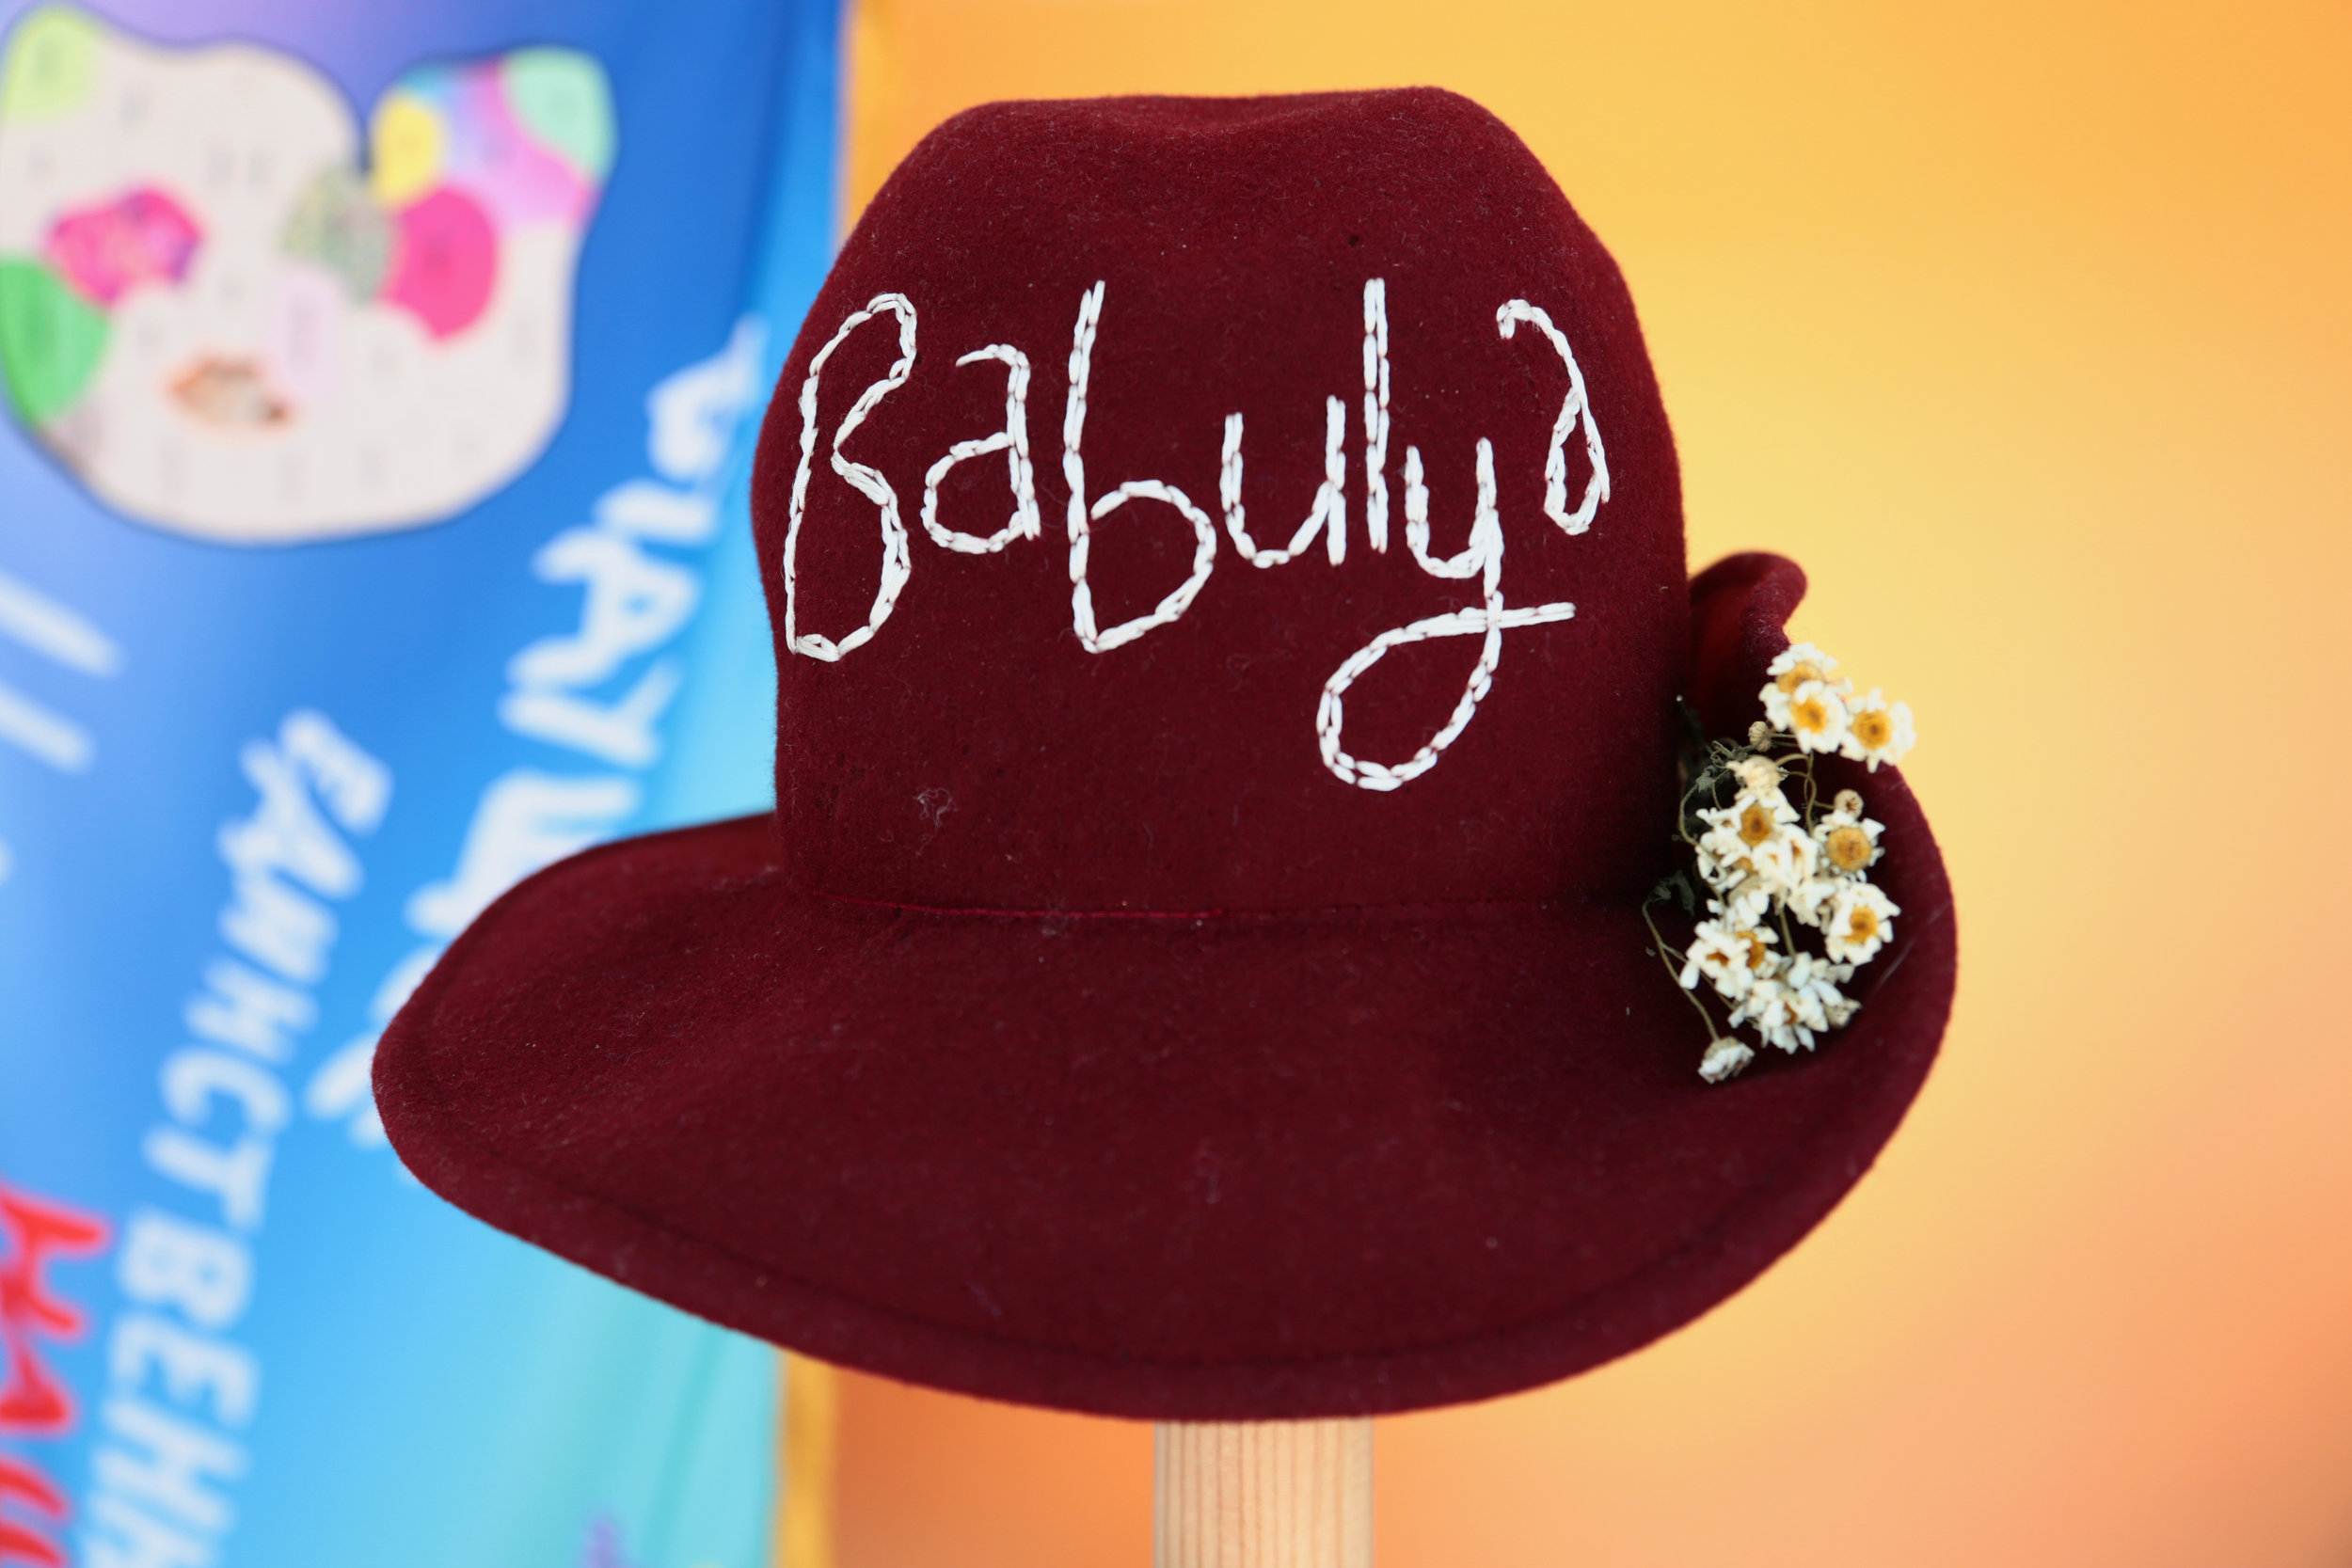 Molly Surazhsky бабуля  (Babulya)  detail    2019   Printed satin, canvas, tulle, wool hat, sherpa fleece, gold candles, embroidery floss, chrysanthemum